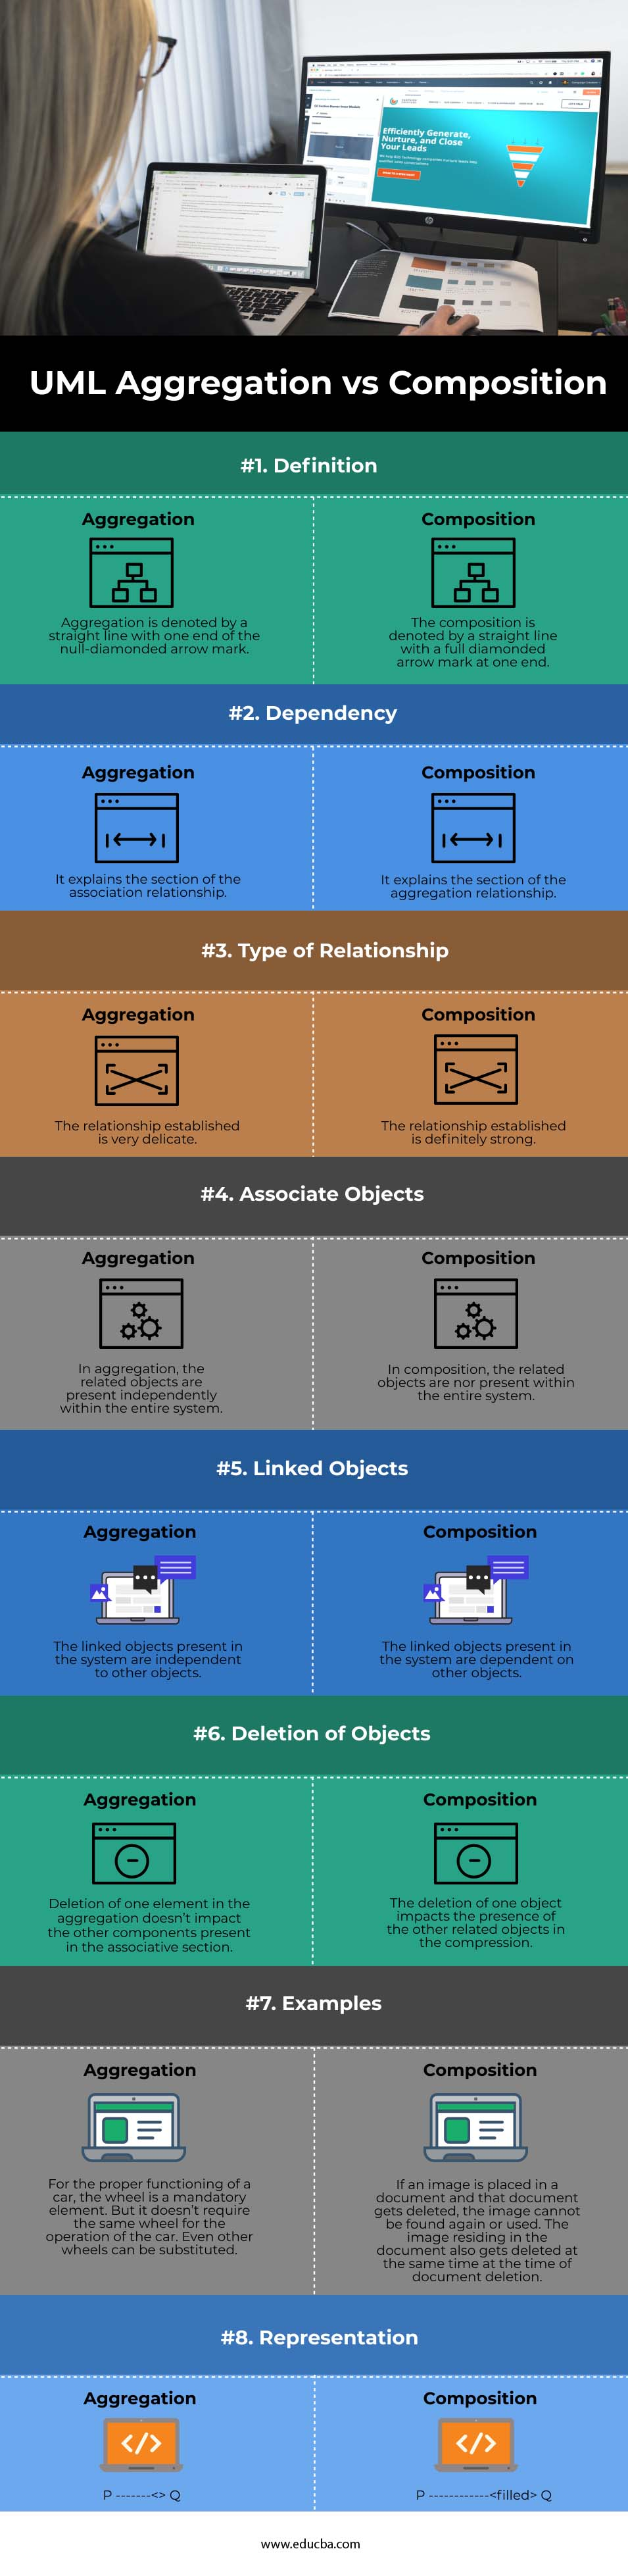 UML Aggregation vs Composition info